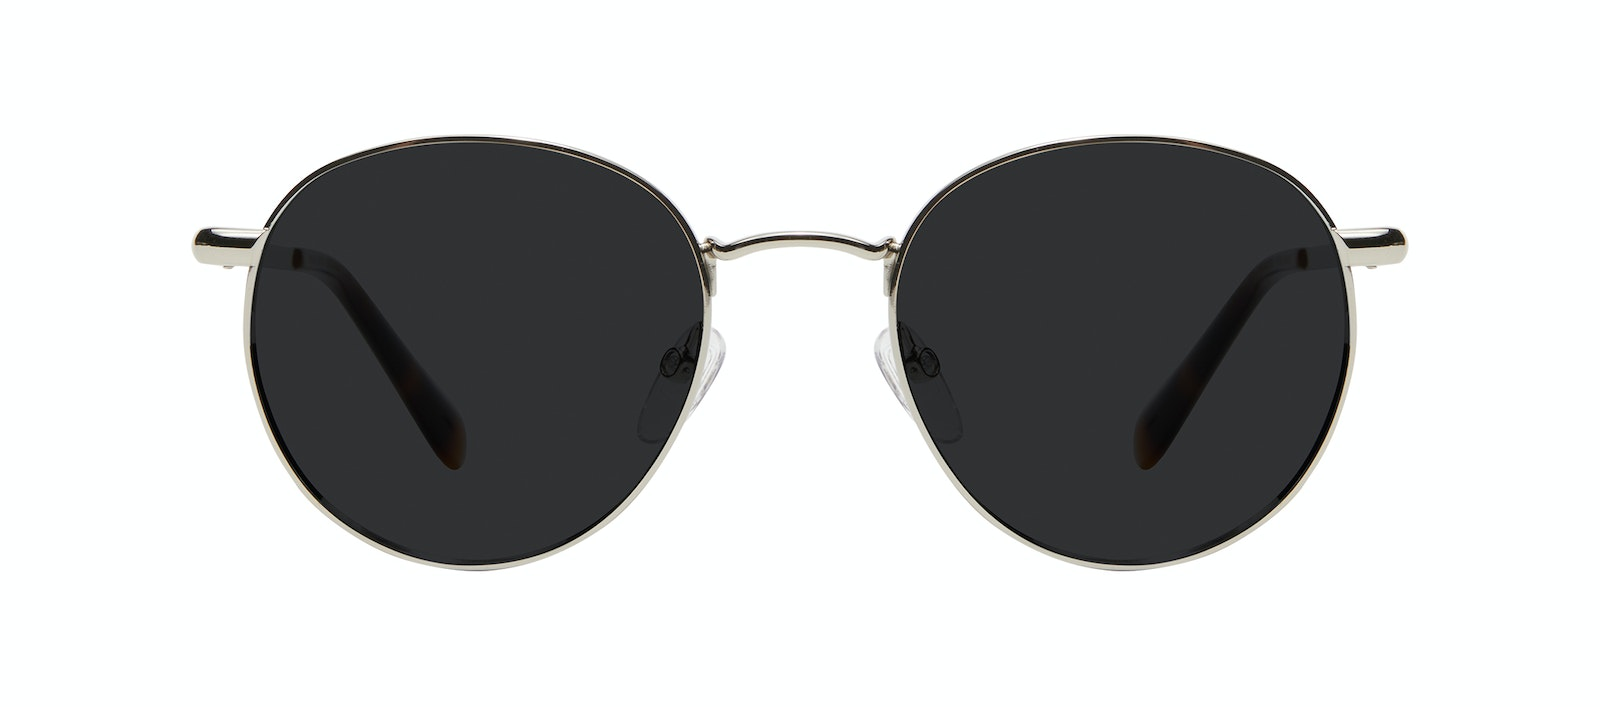 Affordable Fashion Glasses Round Sunglasses Women Dynasty M Silver Front